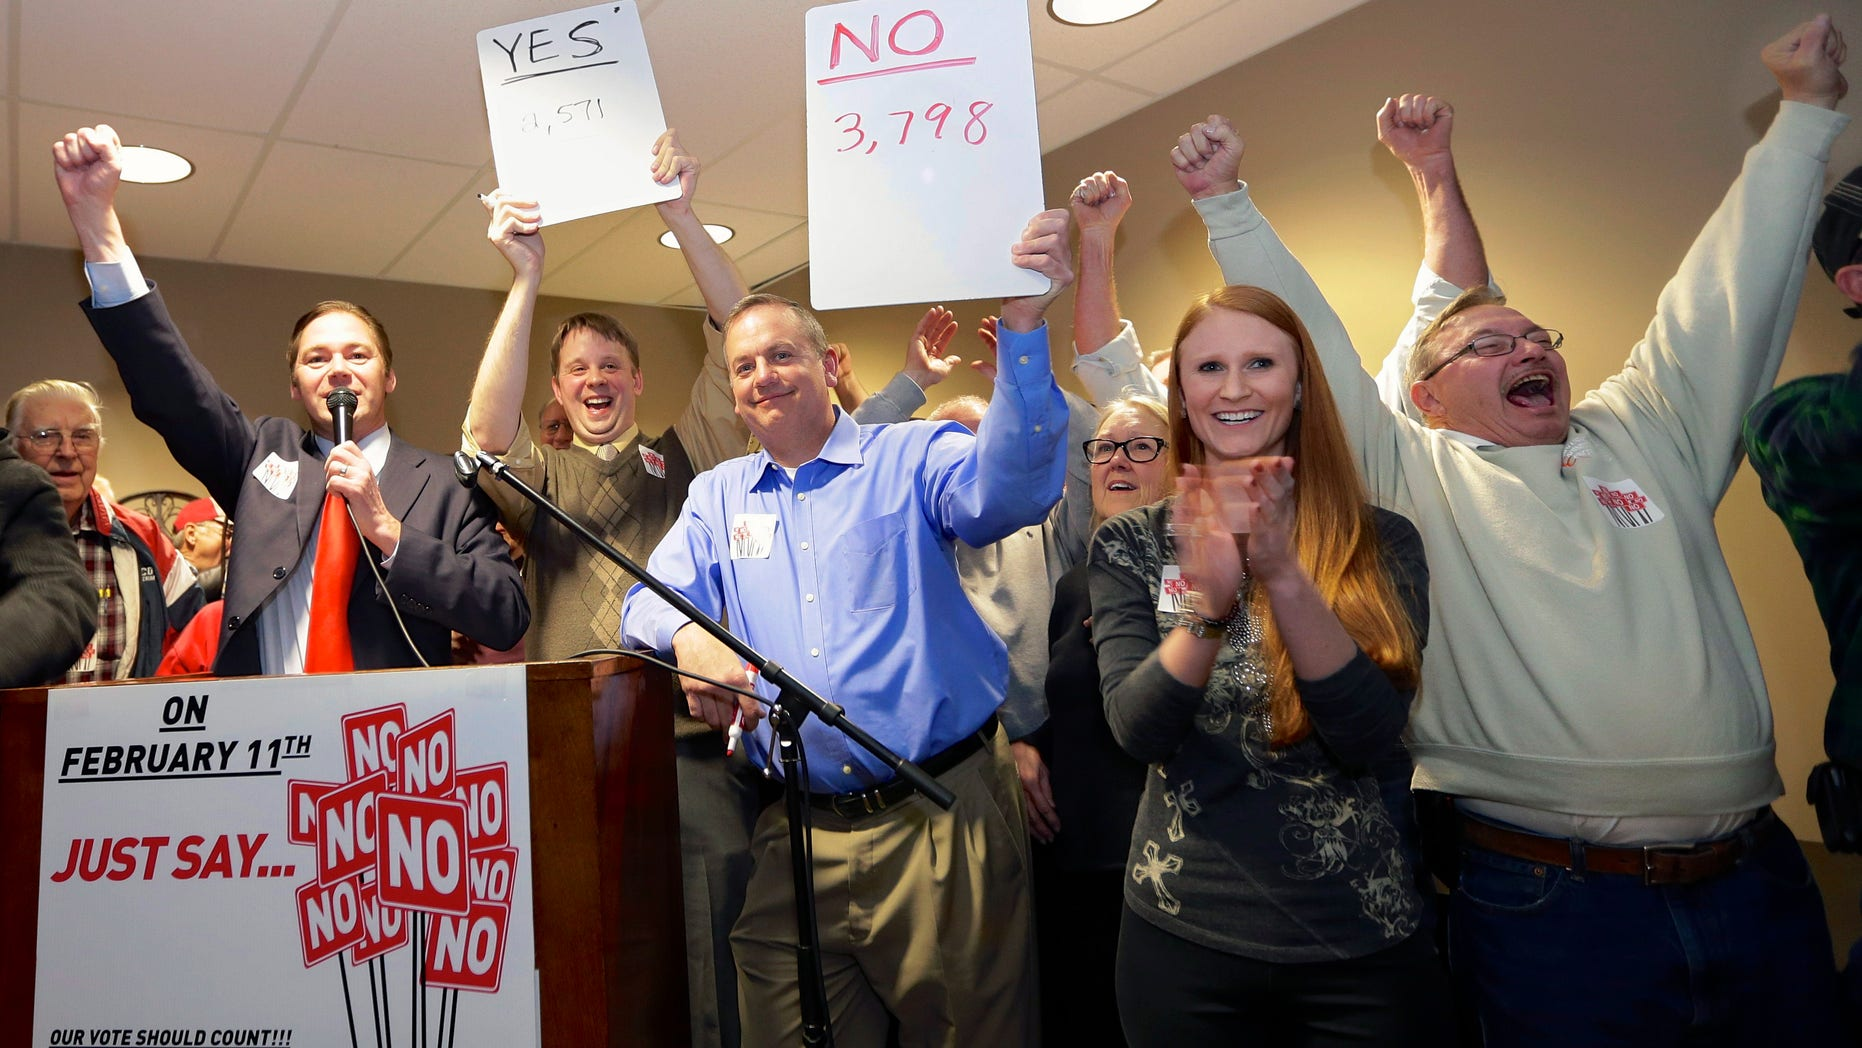 State Sen. Charlie Jansssen of Fremont, second left, Jeremy Jensen, third left, and John Wiegert, center, celebrate with other activists in Fremont, Neb., Tuesday, Feb. 11, 2014, after city voters have decided by voting no, to uphold the law designed to bar immigrants from renting homes if they dont have legal permission to be in the U.S. (AP Photo/Nati Harnik)